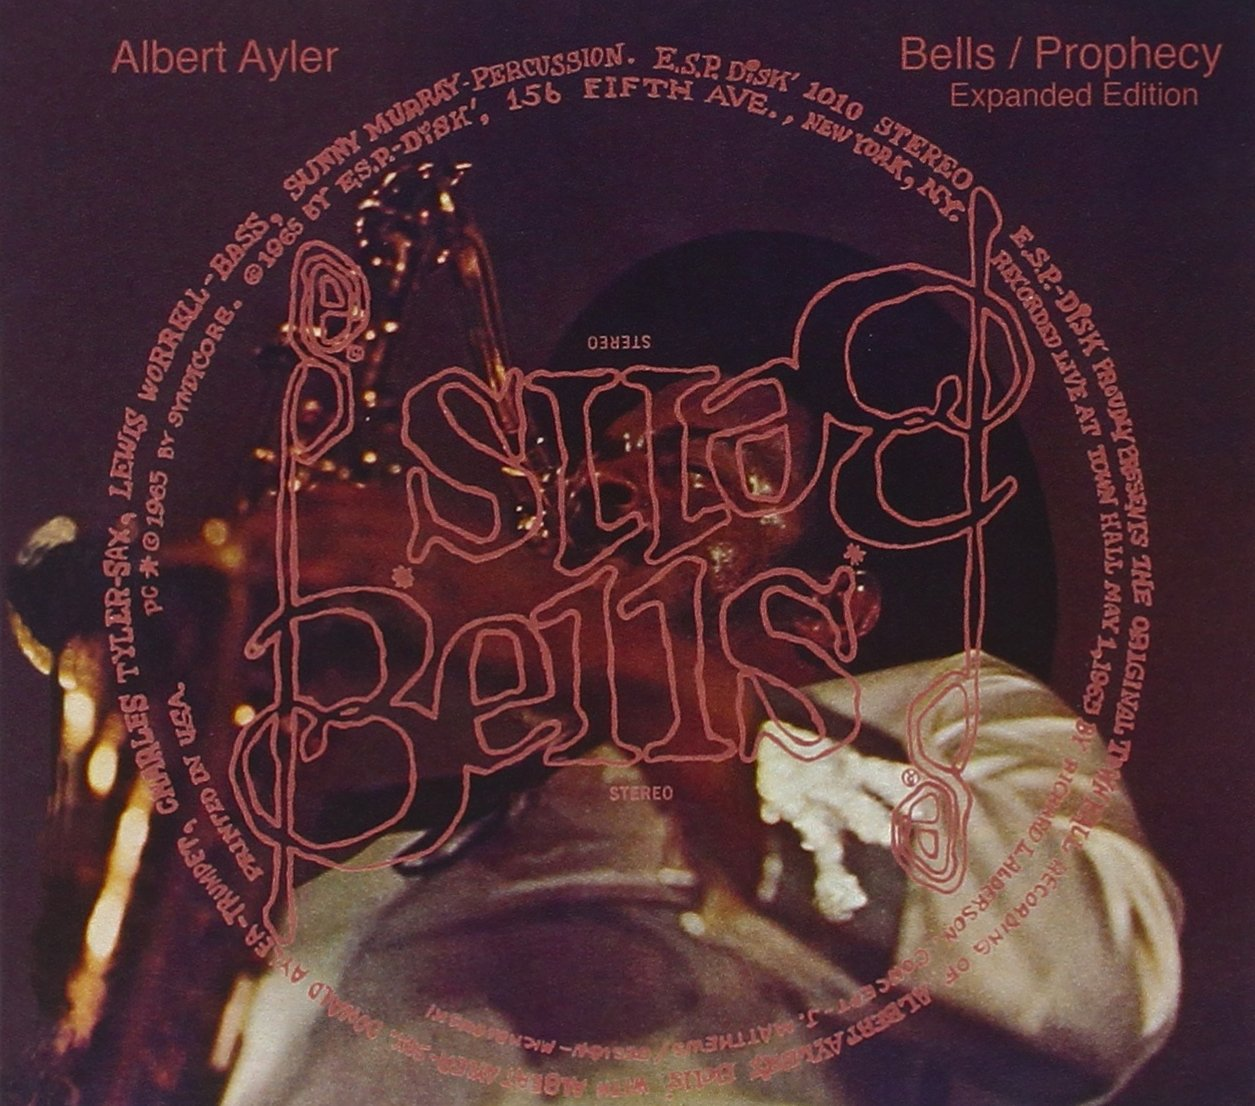 CD : Albert Ayler - Bells/ Prophecy: Expanded Edition (Expanded Version, 2PC)